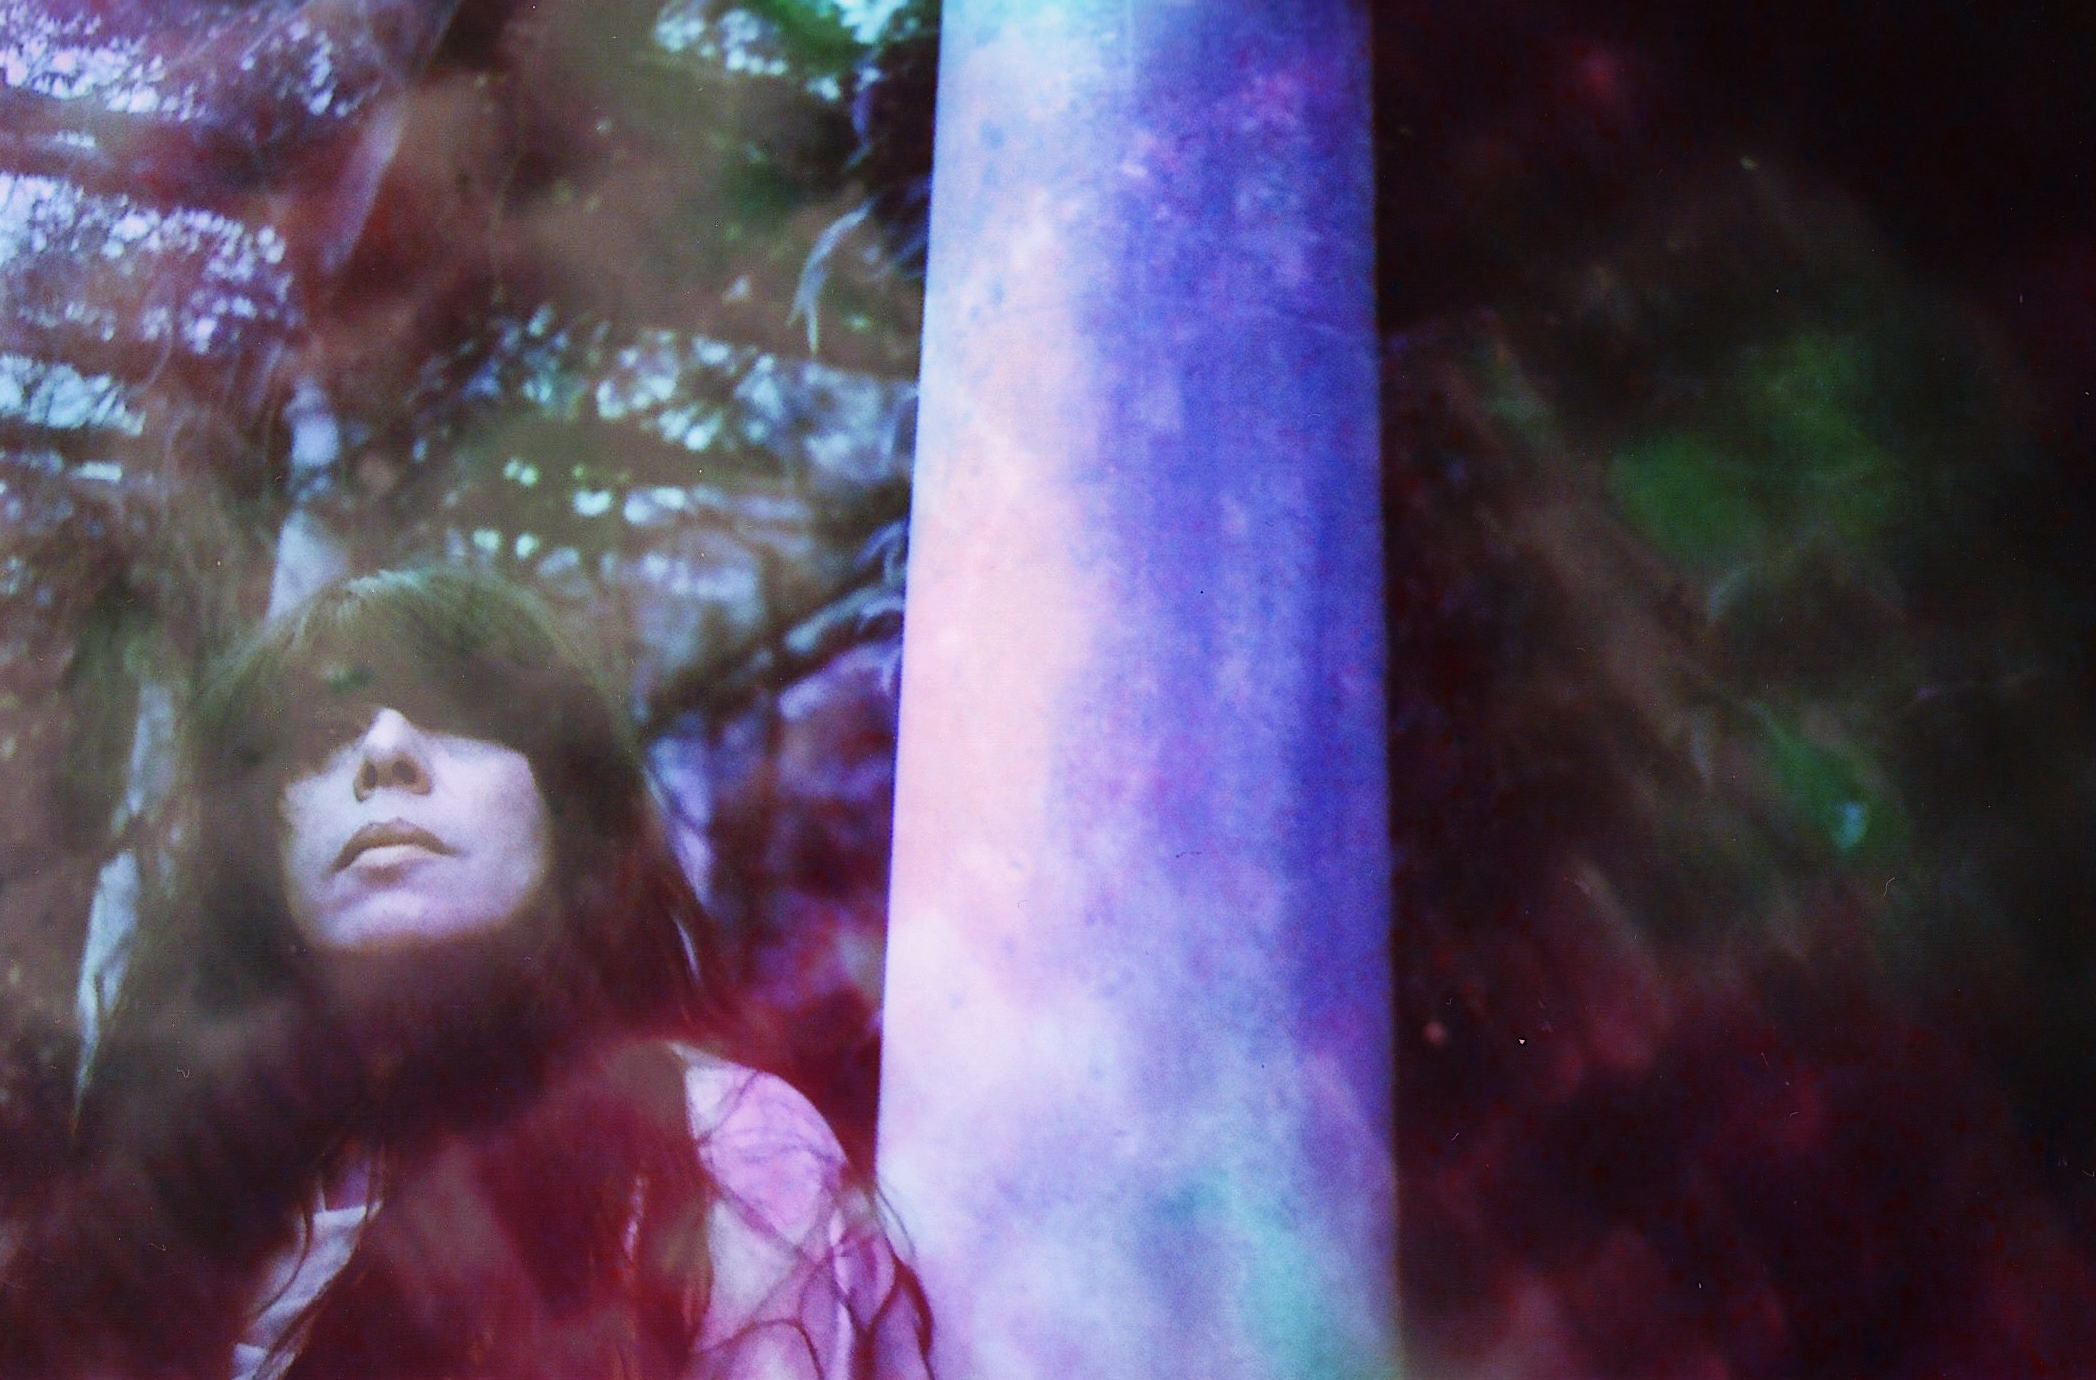 Emma Tricca - Hill Garden and Pergola - Hampstead Heath - Phot Shoot - Julian hand - Purple Chrome - Lomo - Lomography